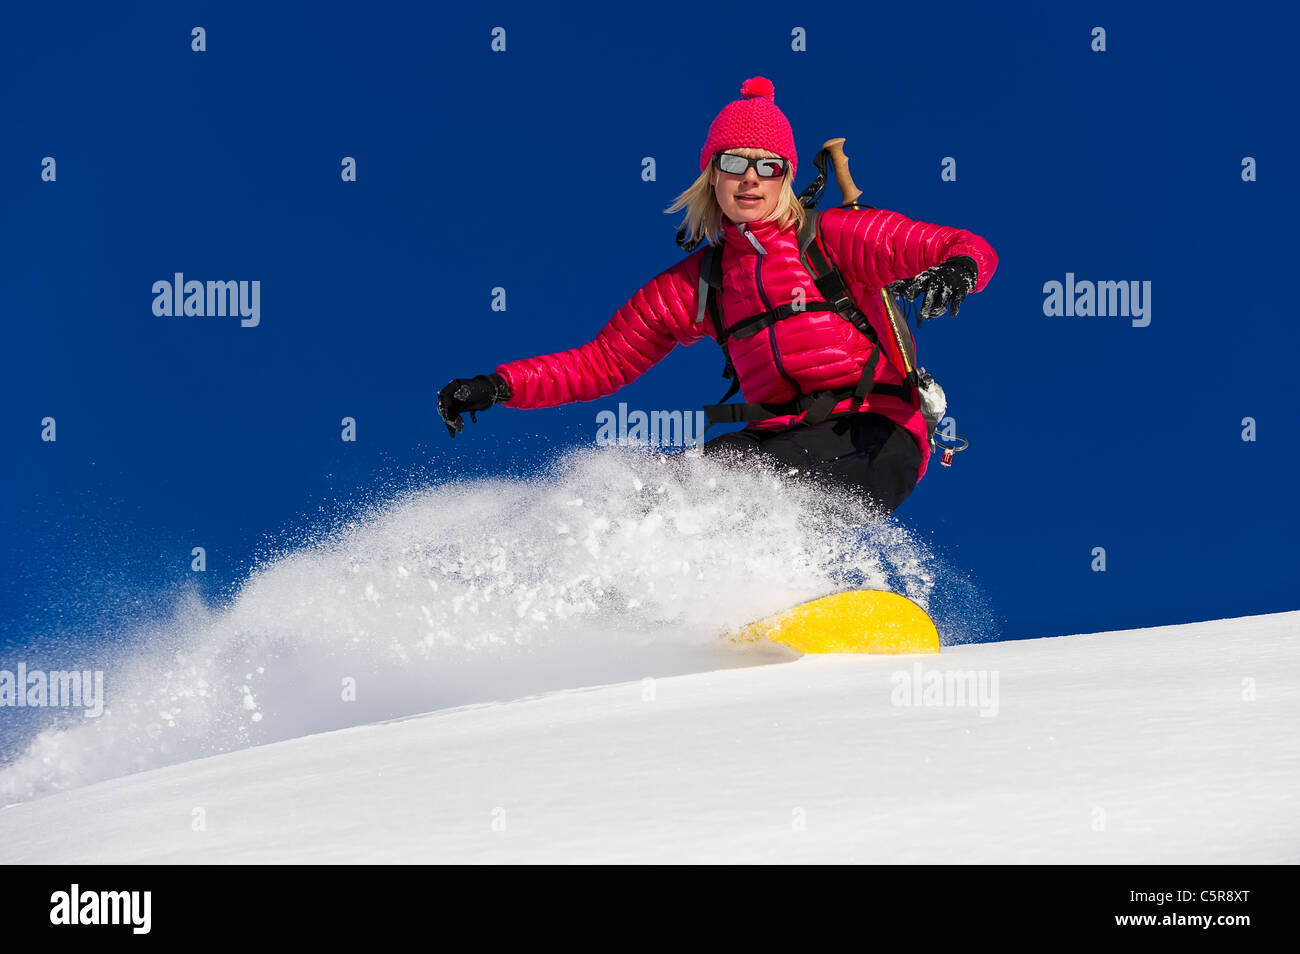 A snowboarder rides deep fresh powder snow at speed. - Stock Image